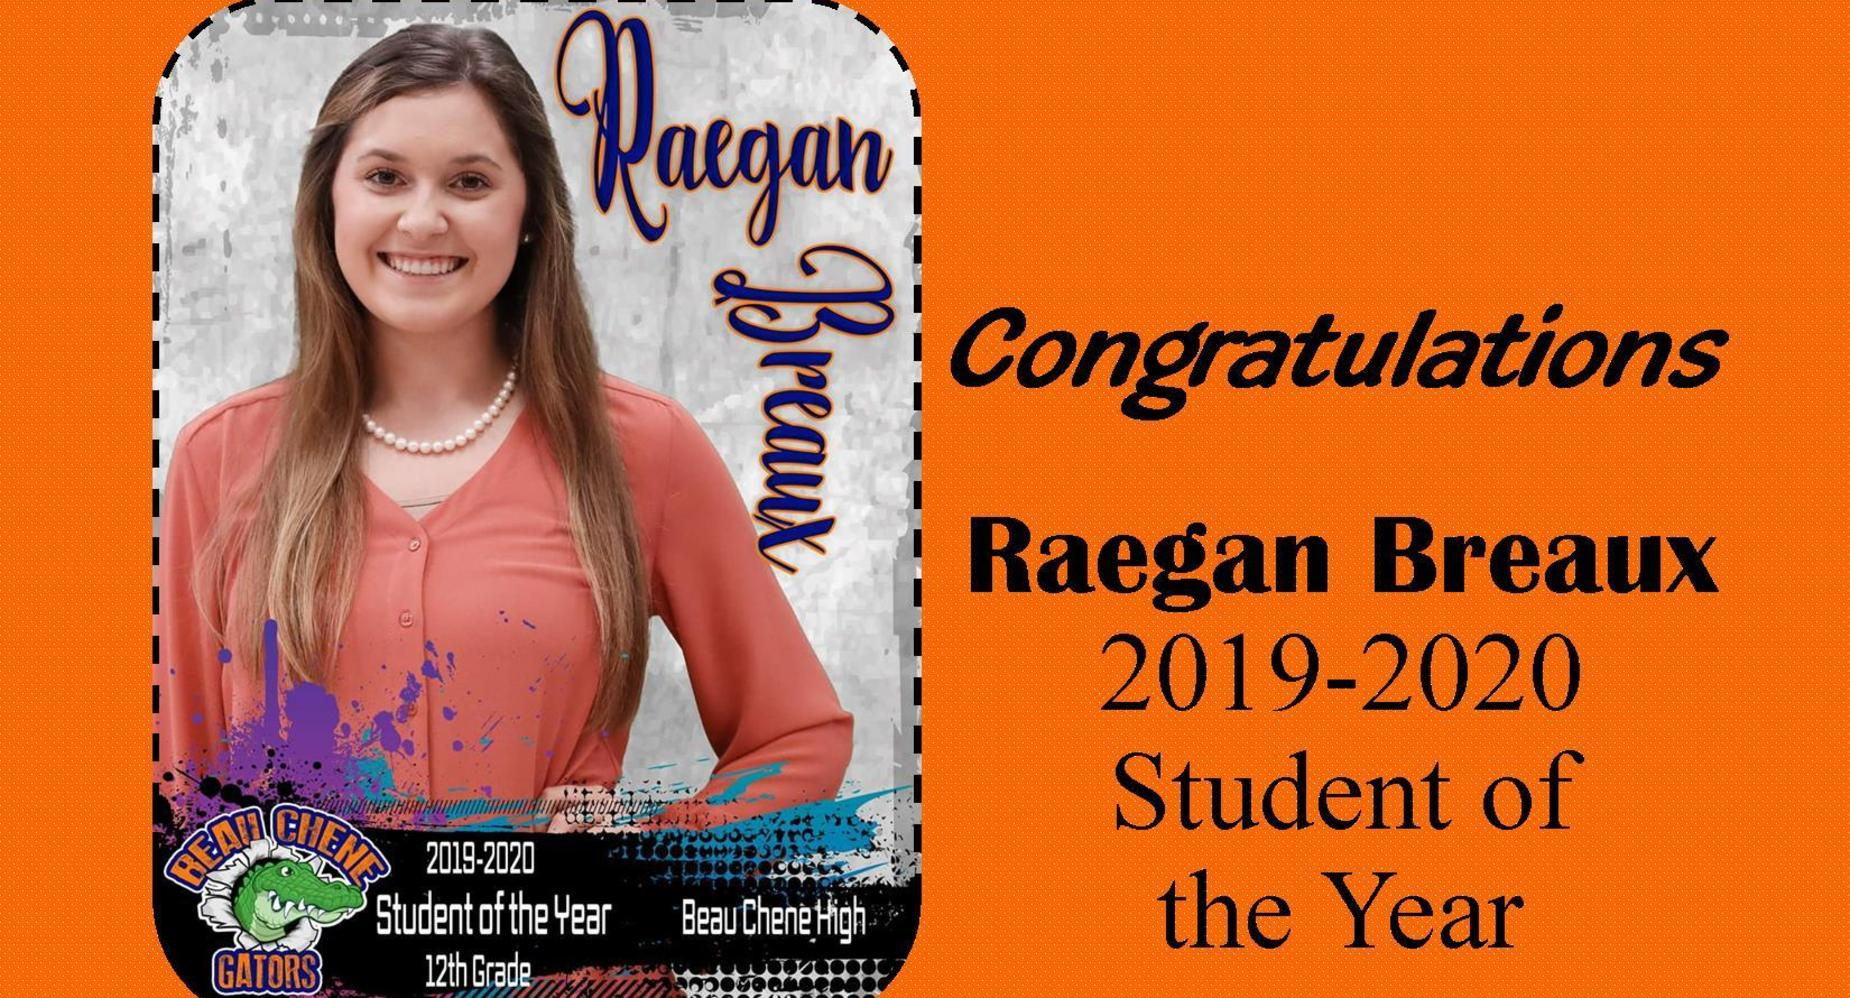 Reagan Breaux - 2019-2020 Student of the Year